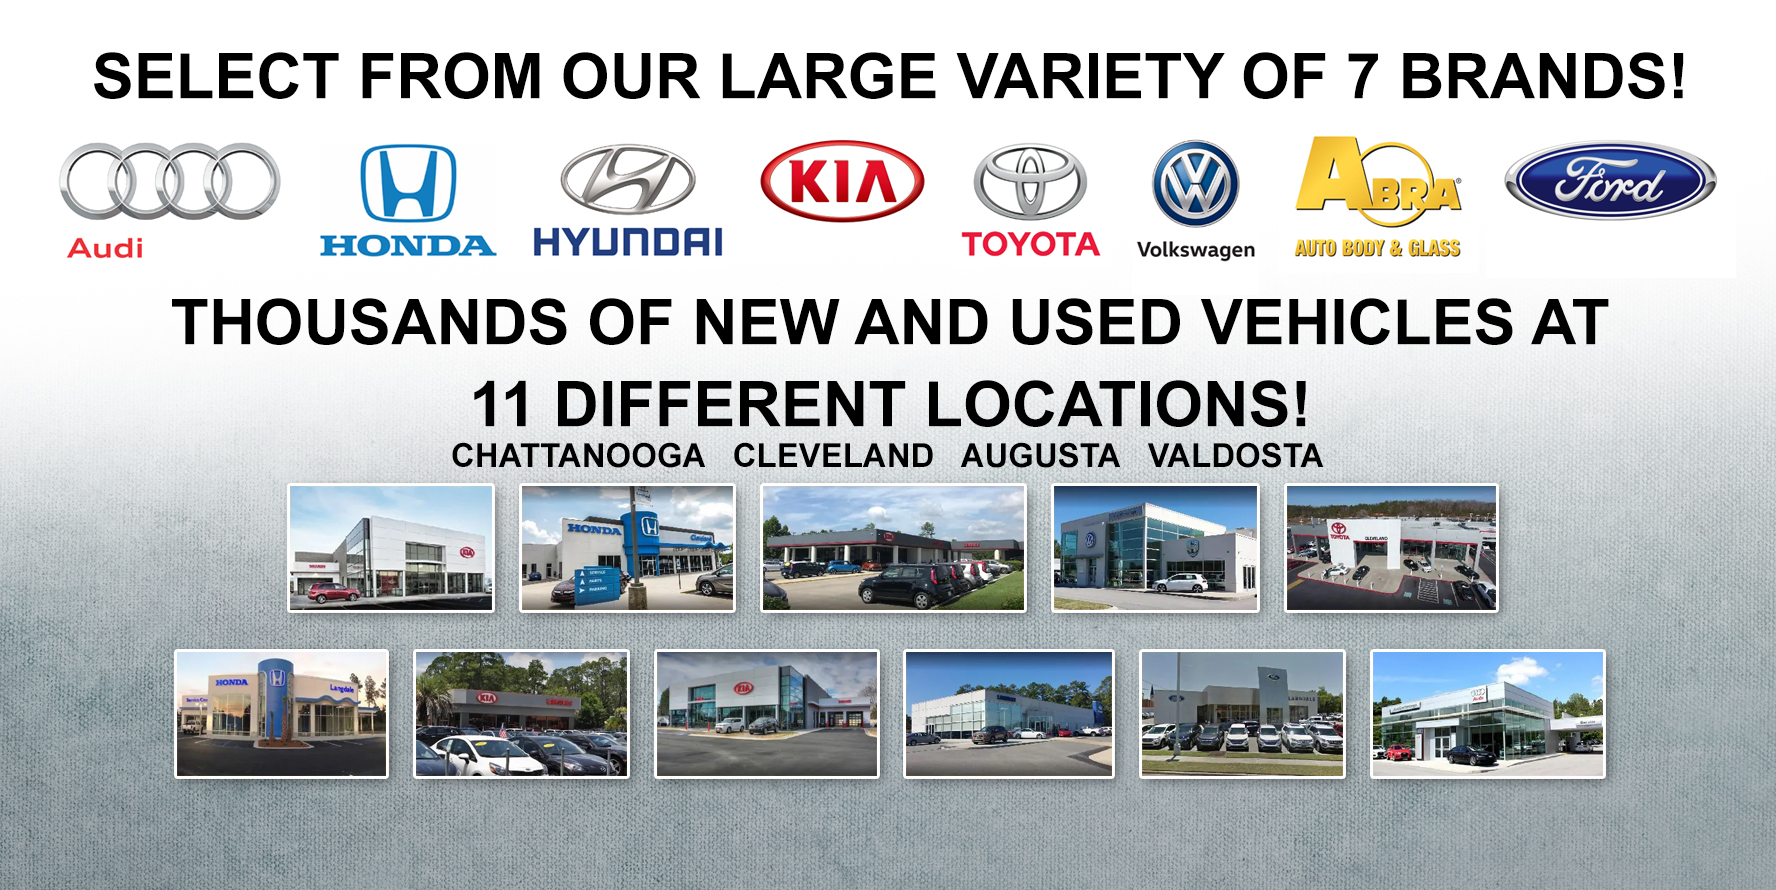 Ford Dealership Valdosta Ga >> Bowers Automotive Group Serving Chattanooga Cleveland